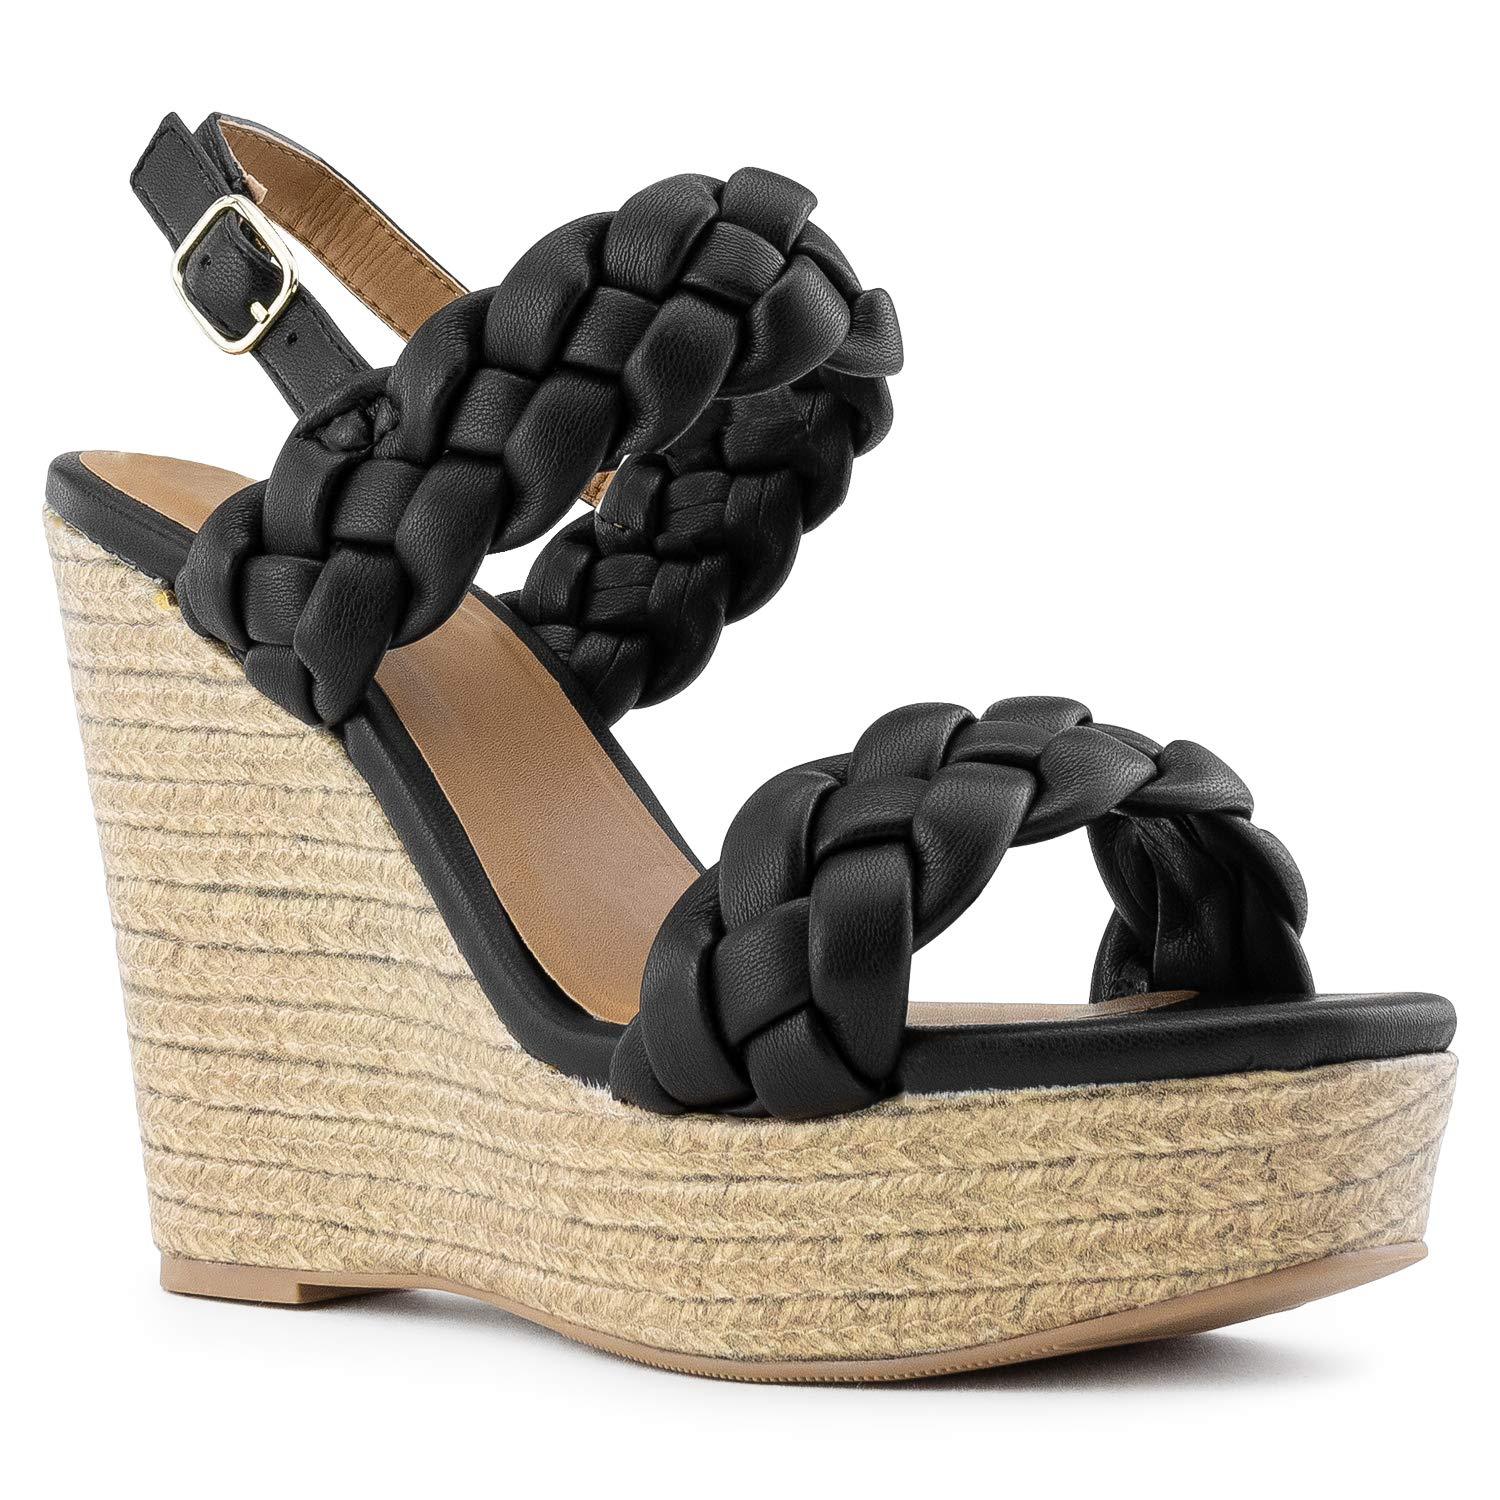 1a2e38dd3 Amazon.com | RF ROOM OF FASHION Open Toe Quilted Trim Espadrille Platform  Wedge | Platforms & Wedges